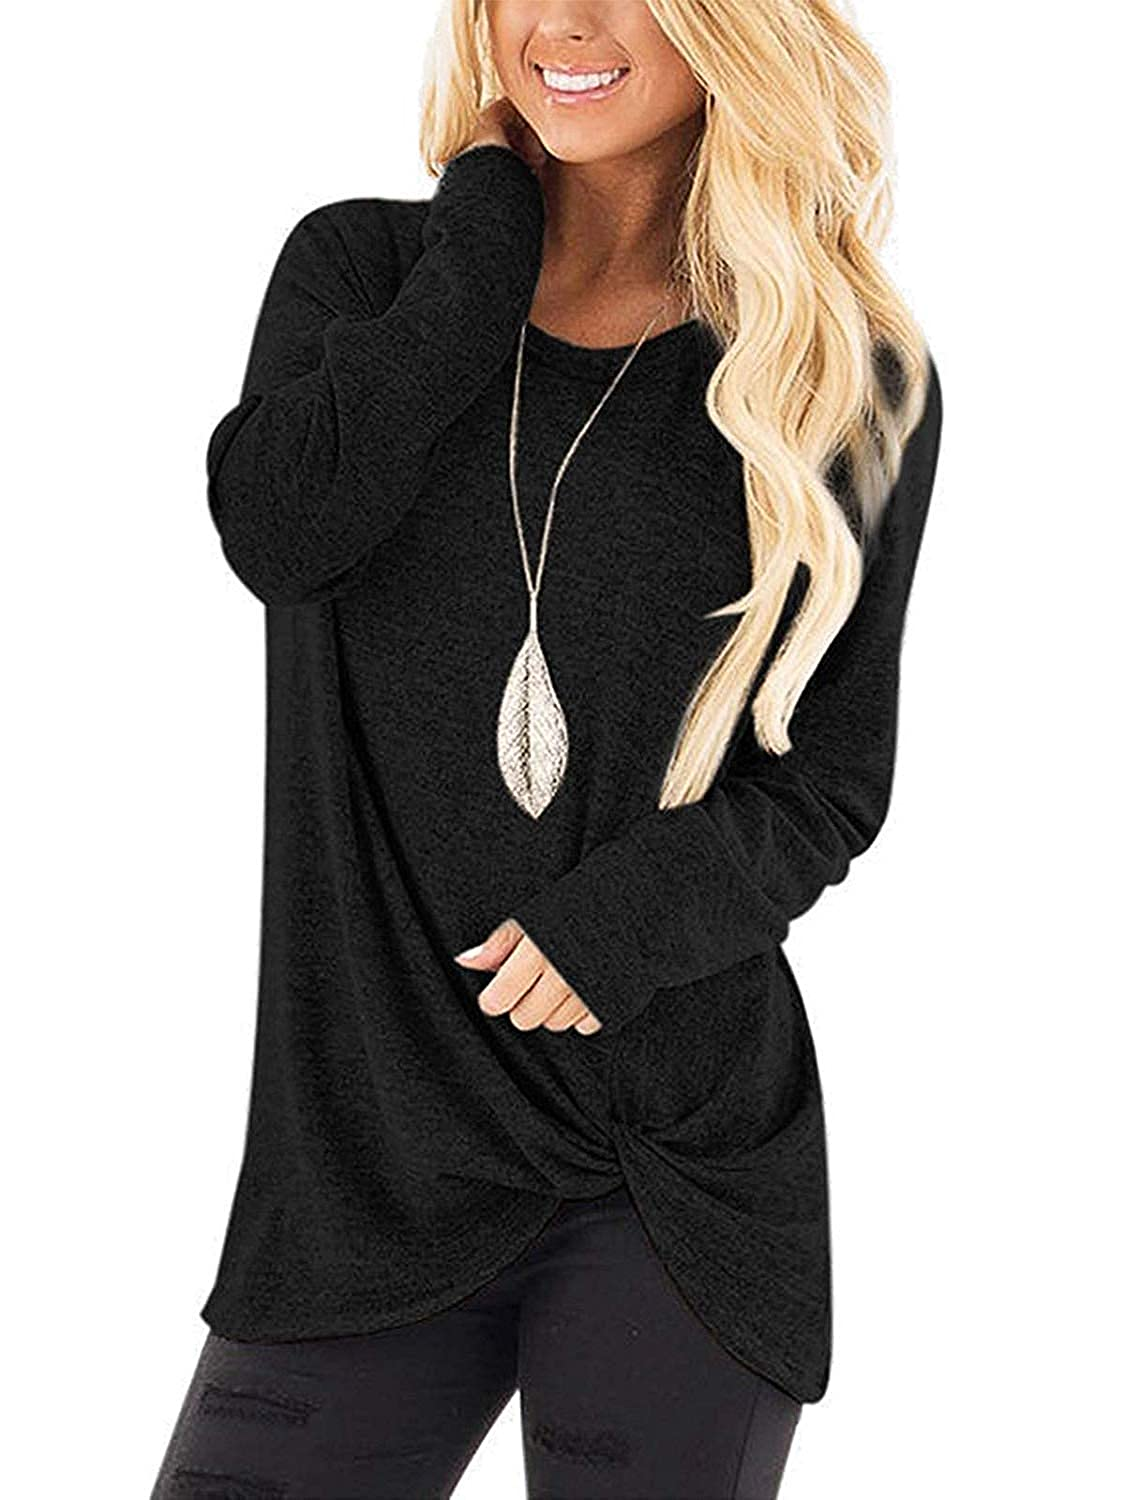 Black Women's TShirts Long Sleeve O Neck Comfy Knot Twist Front Tunic Blouse Tops